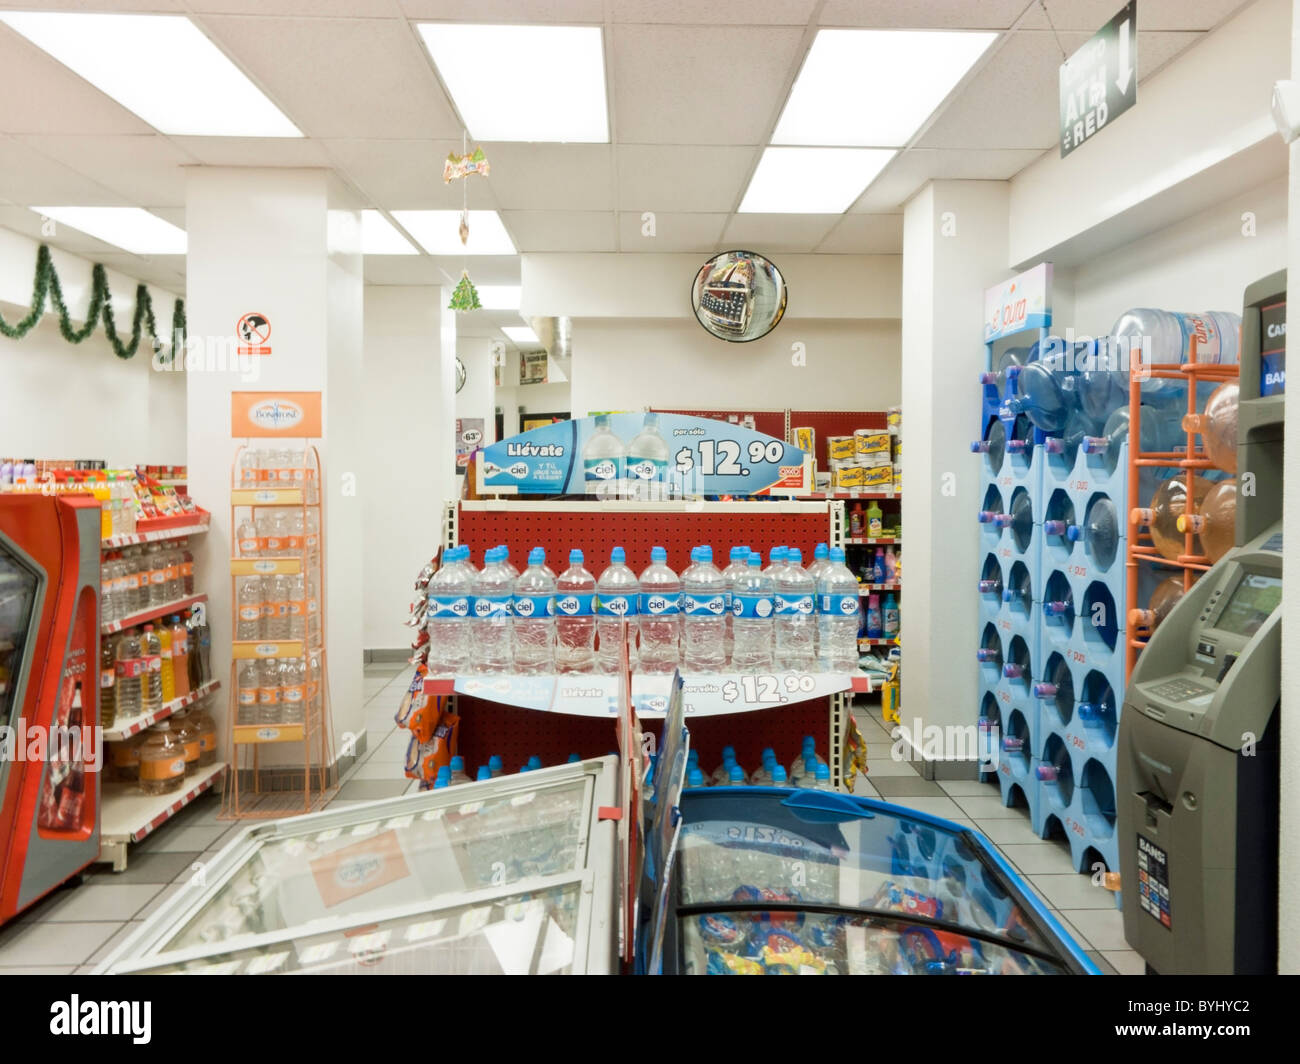 area of small brightly lit Mexican convenience chain store featuring bottled water Avenida Alvaro Obregon Mexico - Stock Image